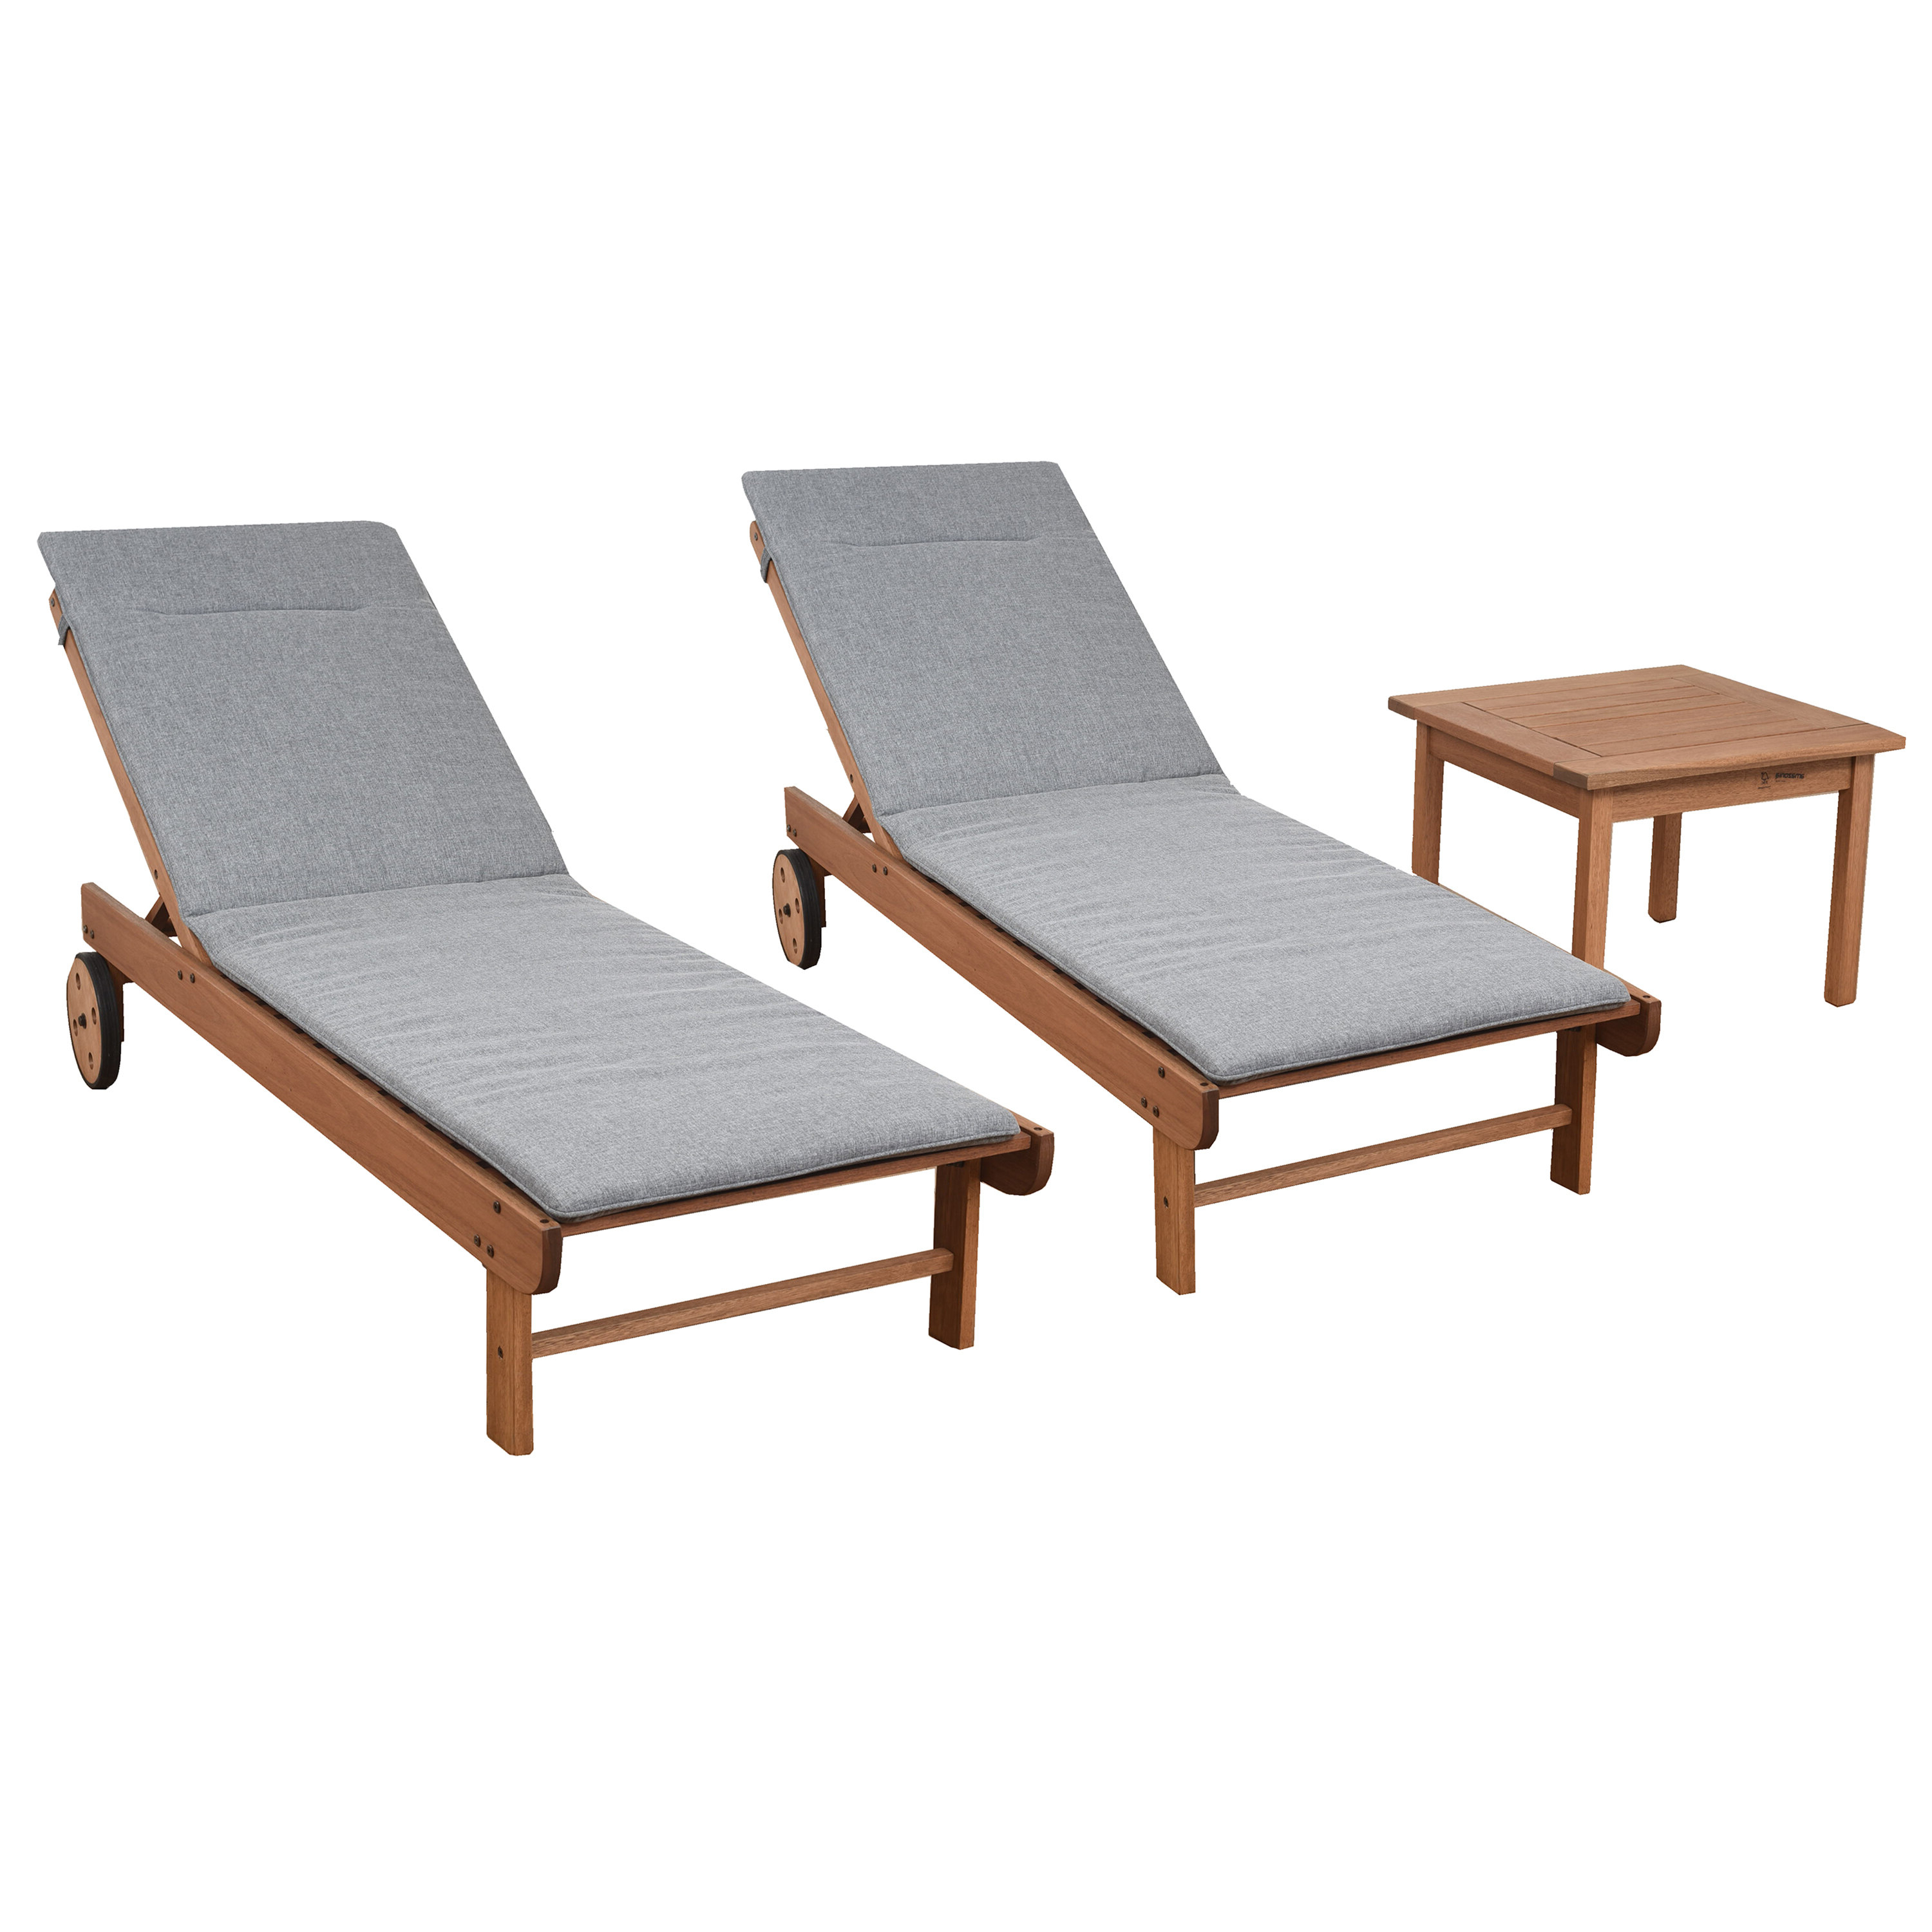 Brighton Gray Cushion Patio 3 Piece Single Reclining Chaise Lounge Set With  Table For Widely Used Outdoor 3 Piece Acacia Wood Chaise Lounge Sets (View 7 of 25)